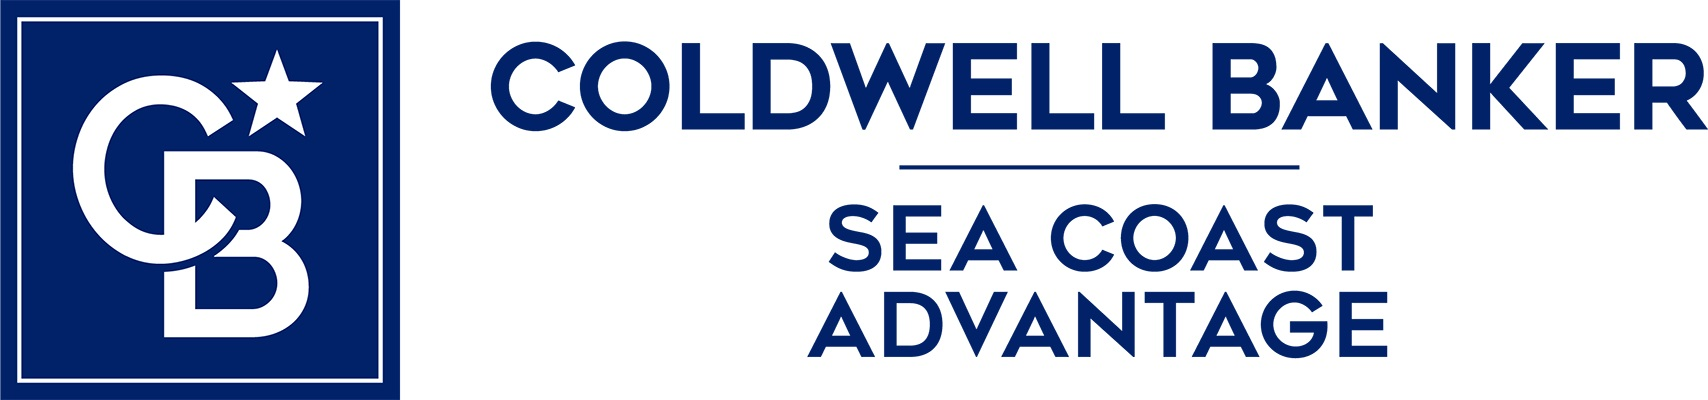 Irena Kohler - Coldwell Banker Sea Coast Advantage Realty